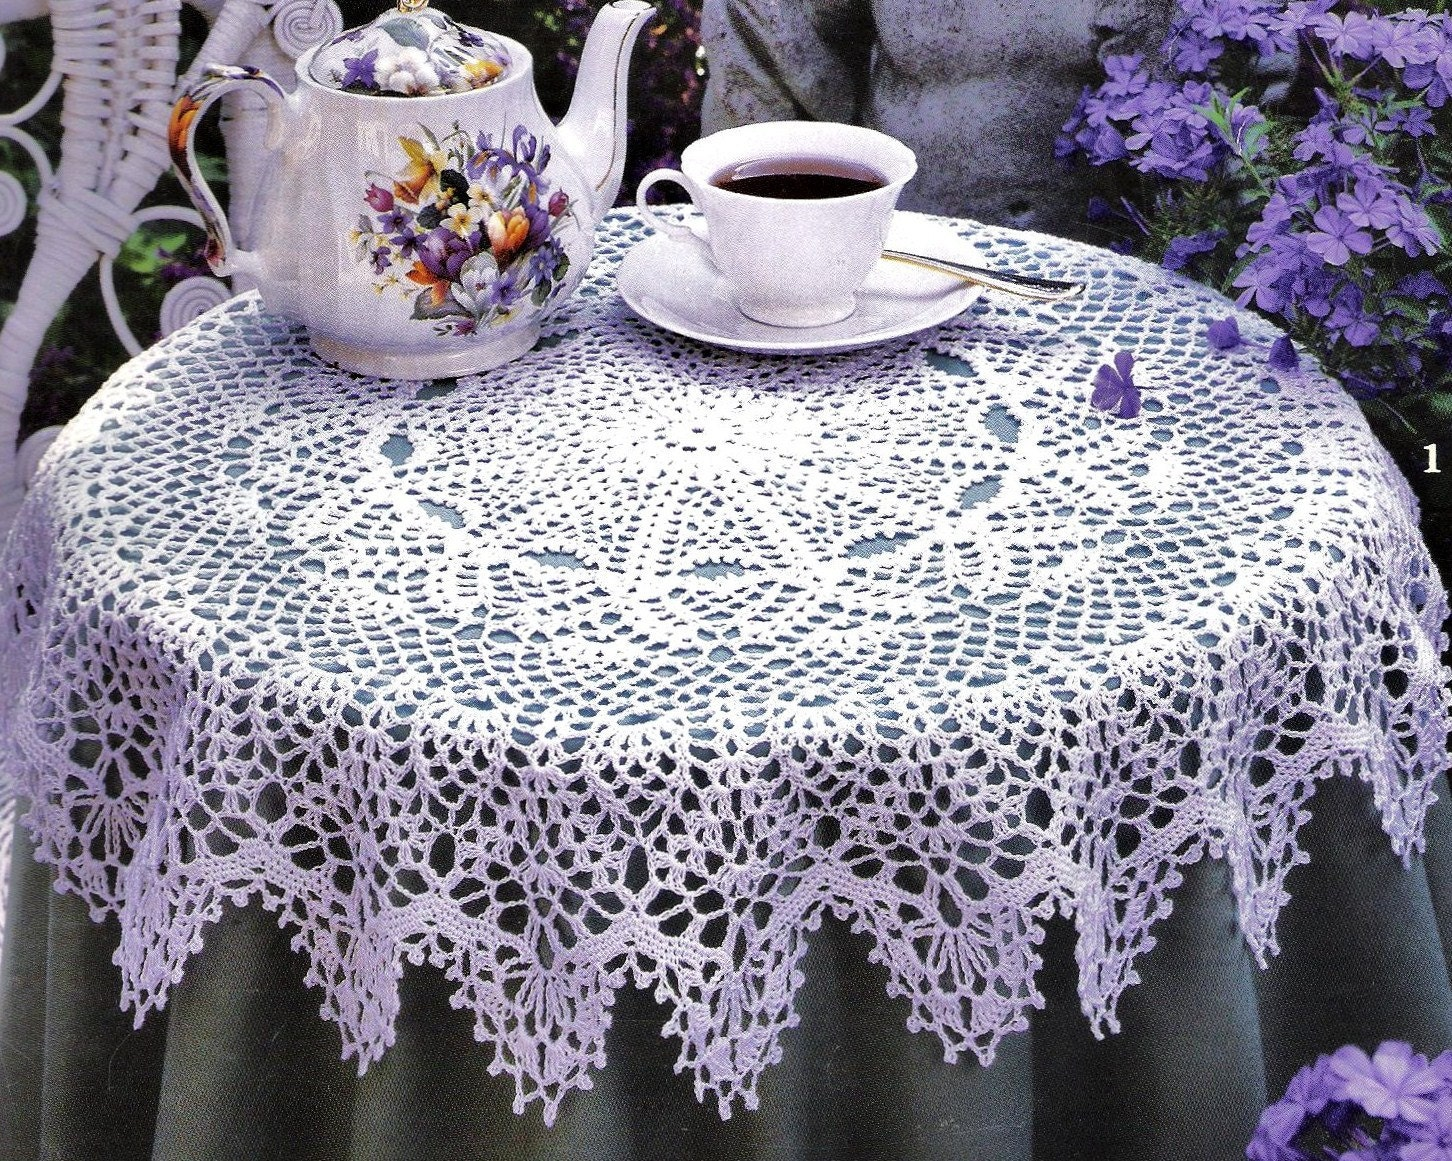 Free crochet patterns for round tablecloths squareone for round crochet tablecloth patterns booklet by stitchyspot bankloansurffo Choice Image